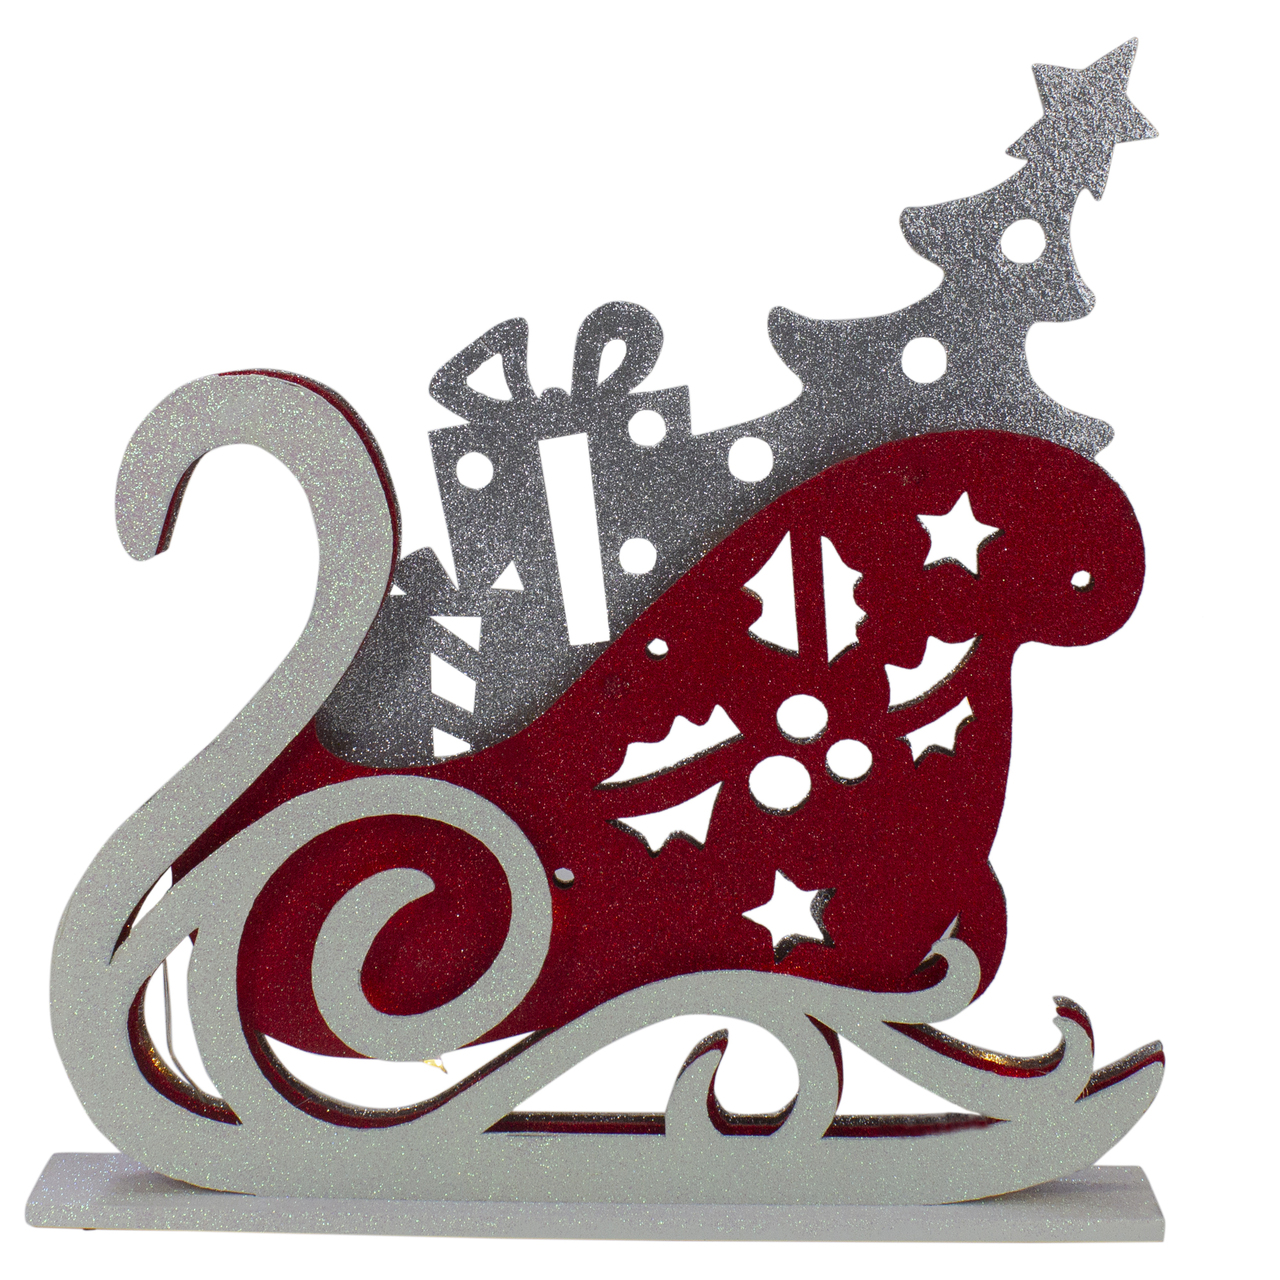 18 red white and silver led lighted sleigh silhouette table top christmas decoration 31466893